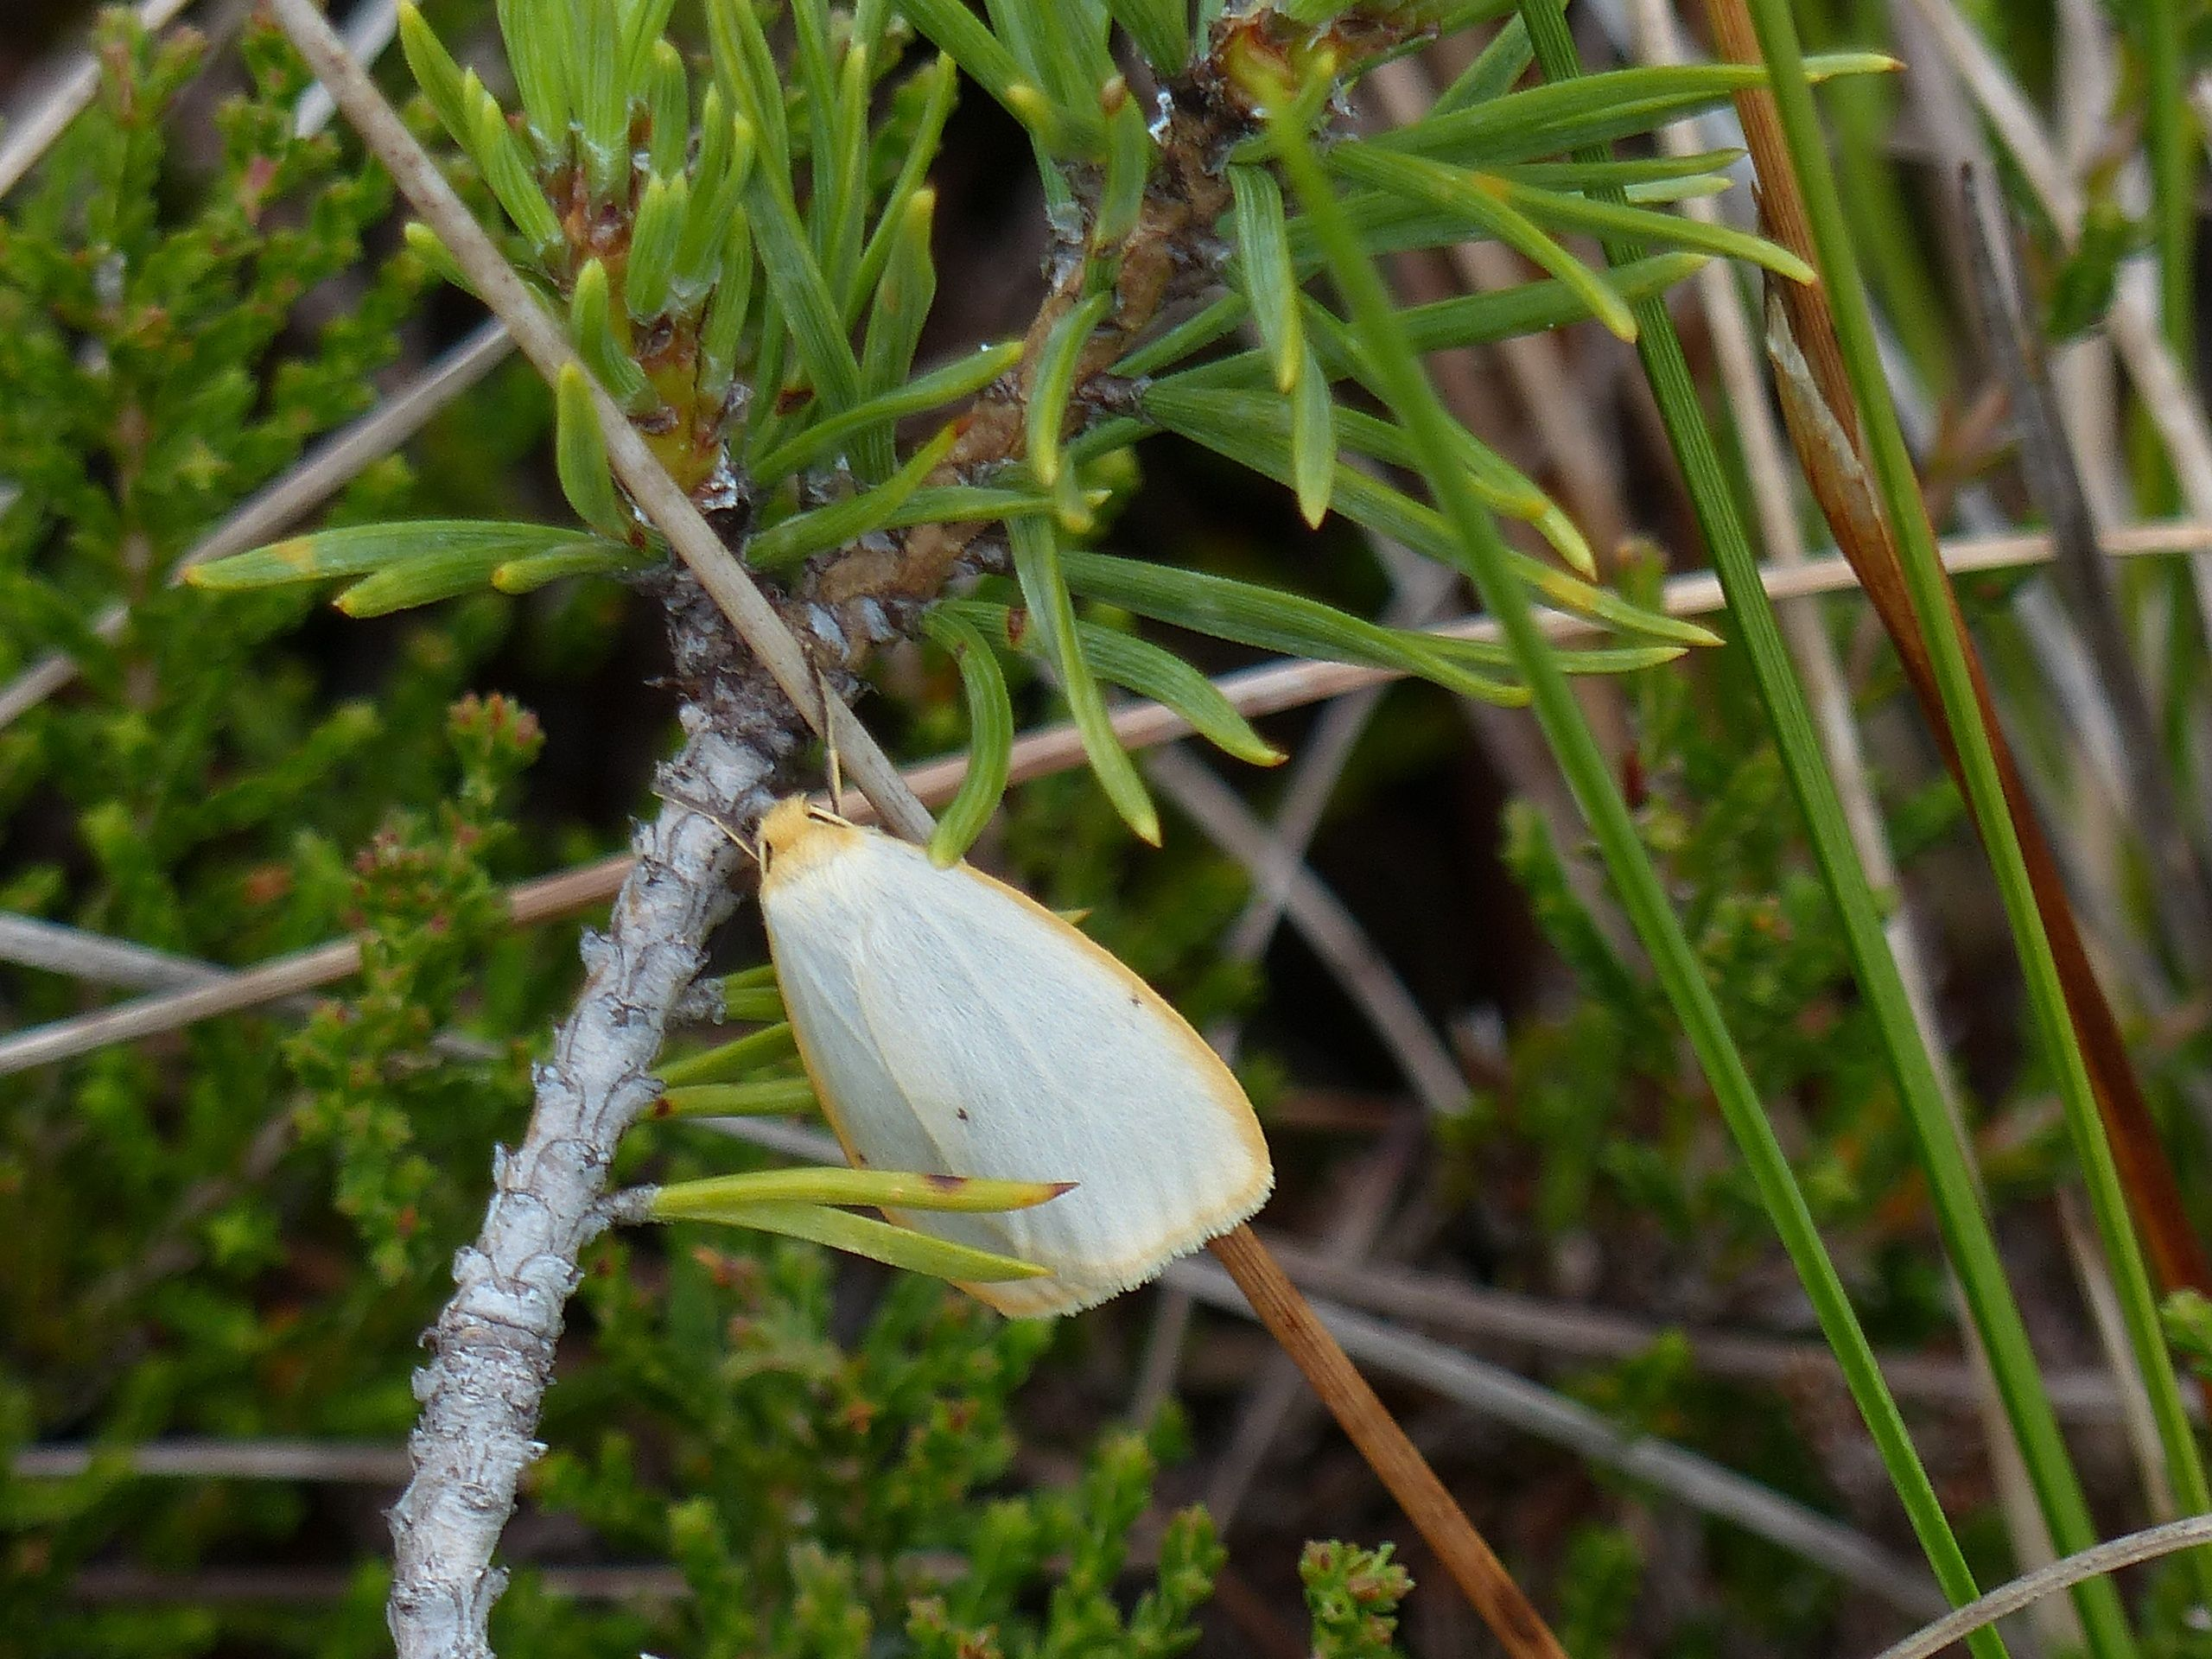 Four-dotted footman moth, Rabivere Bog.